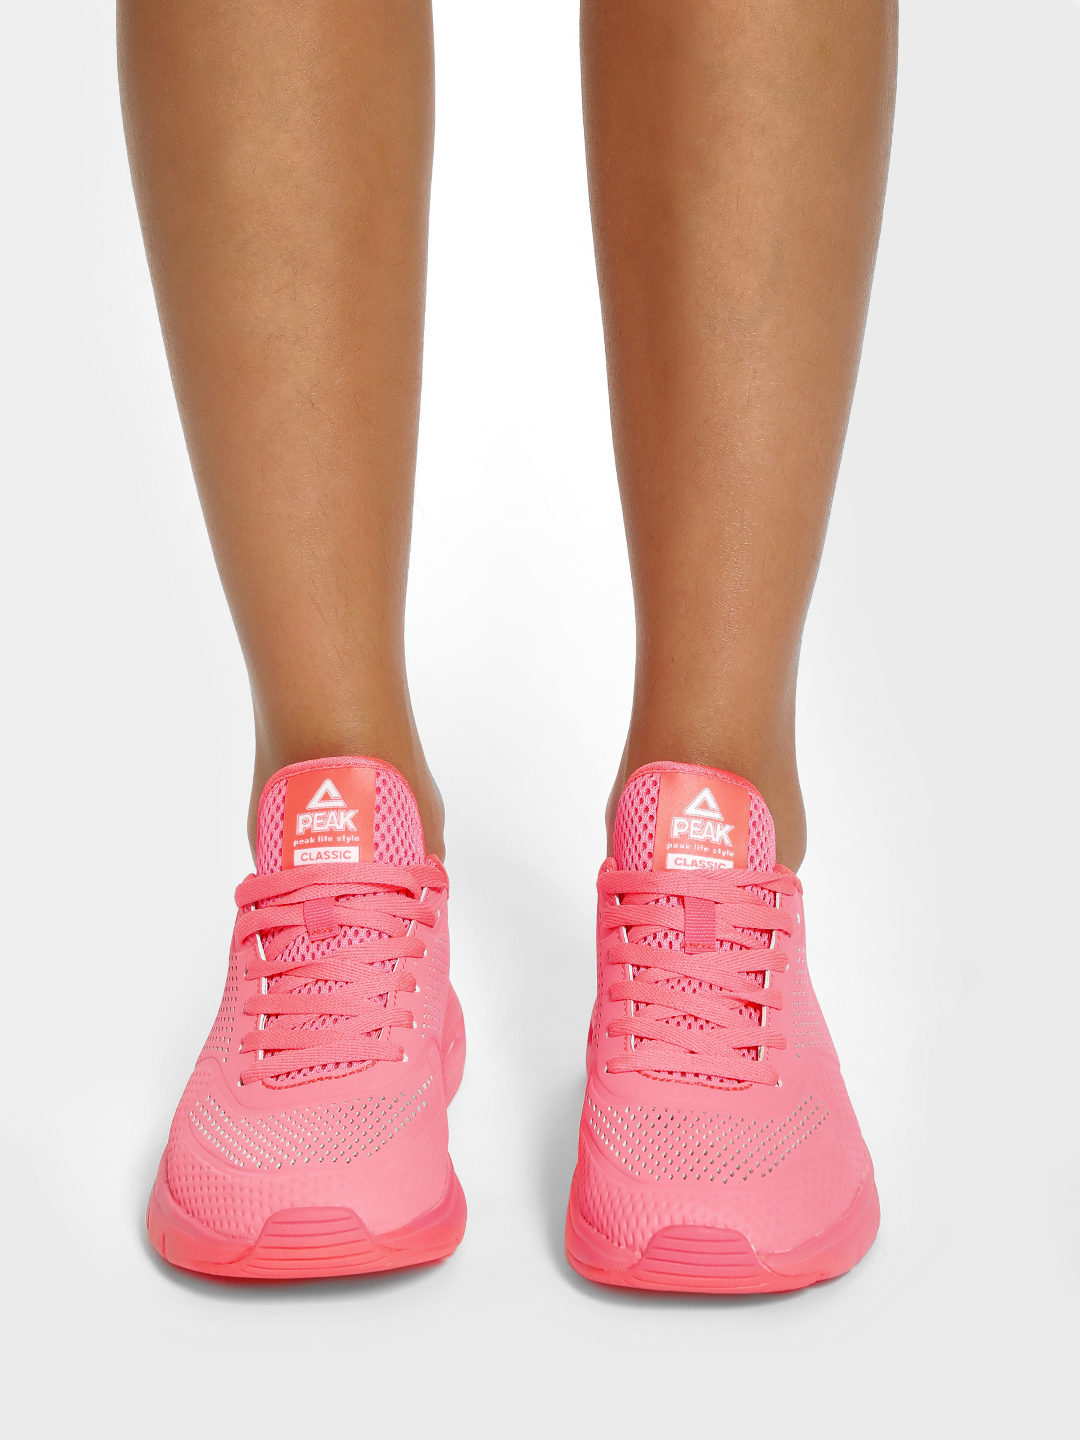 Peak Pink Perforated Running Shoes 1